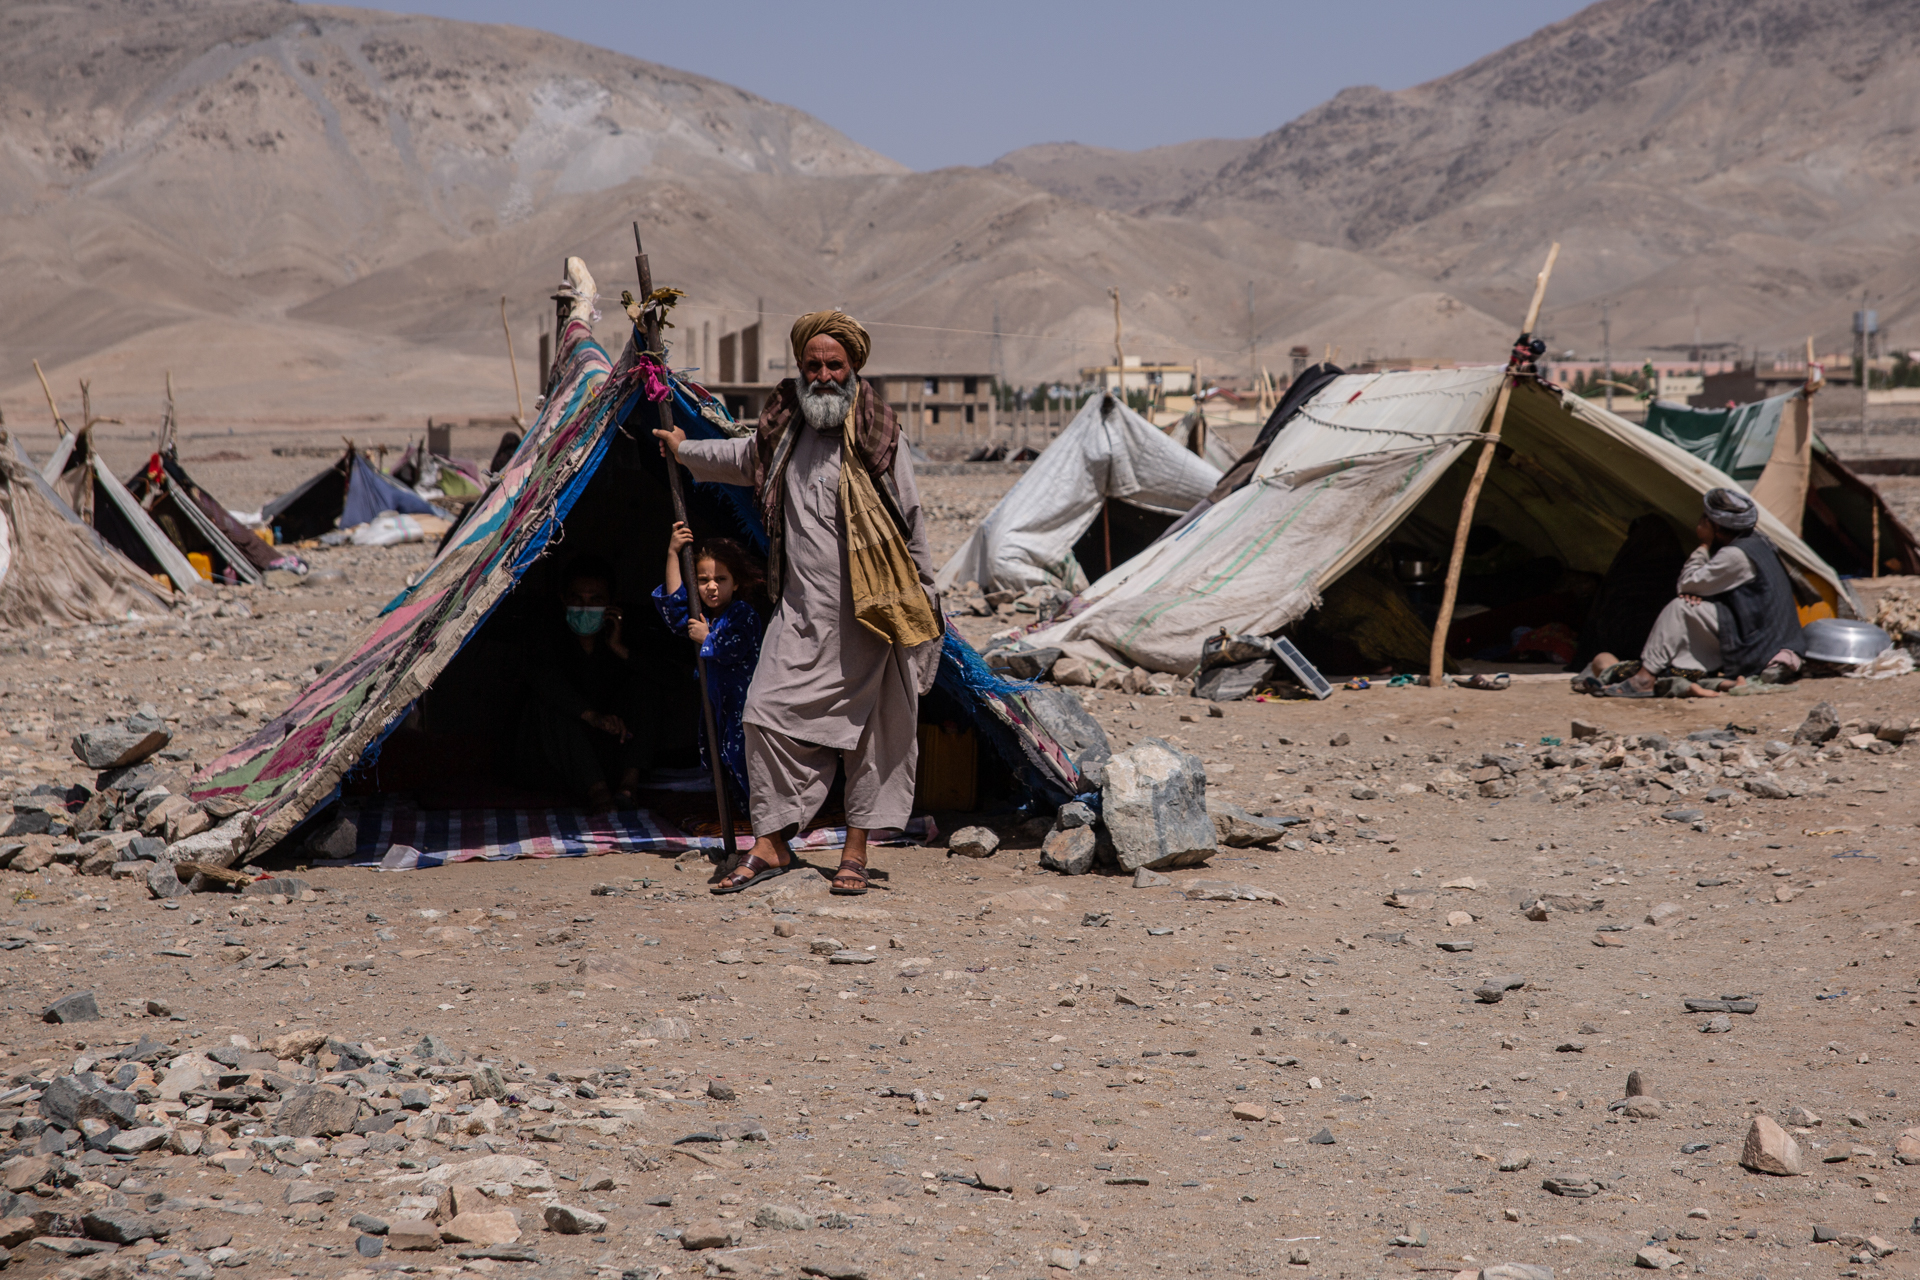 An encampment in Afghanistan